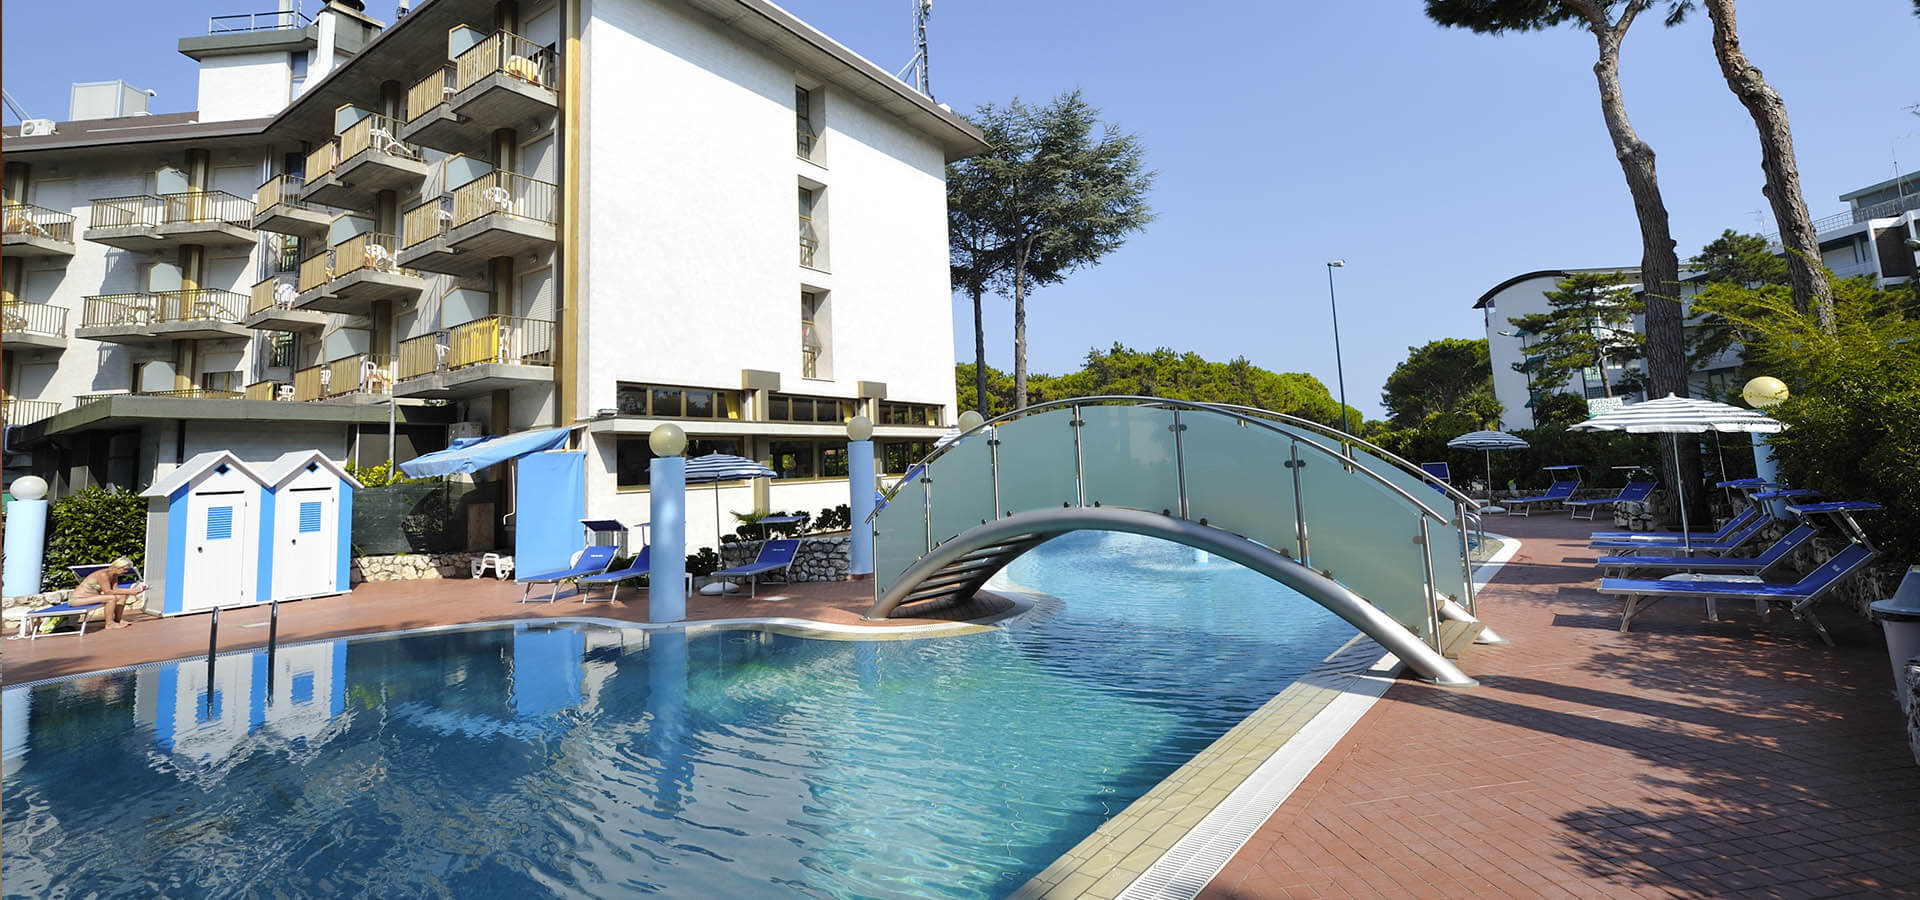 hotel with pool in Lignano Riviera